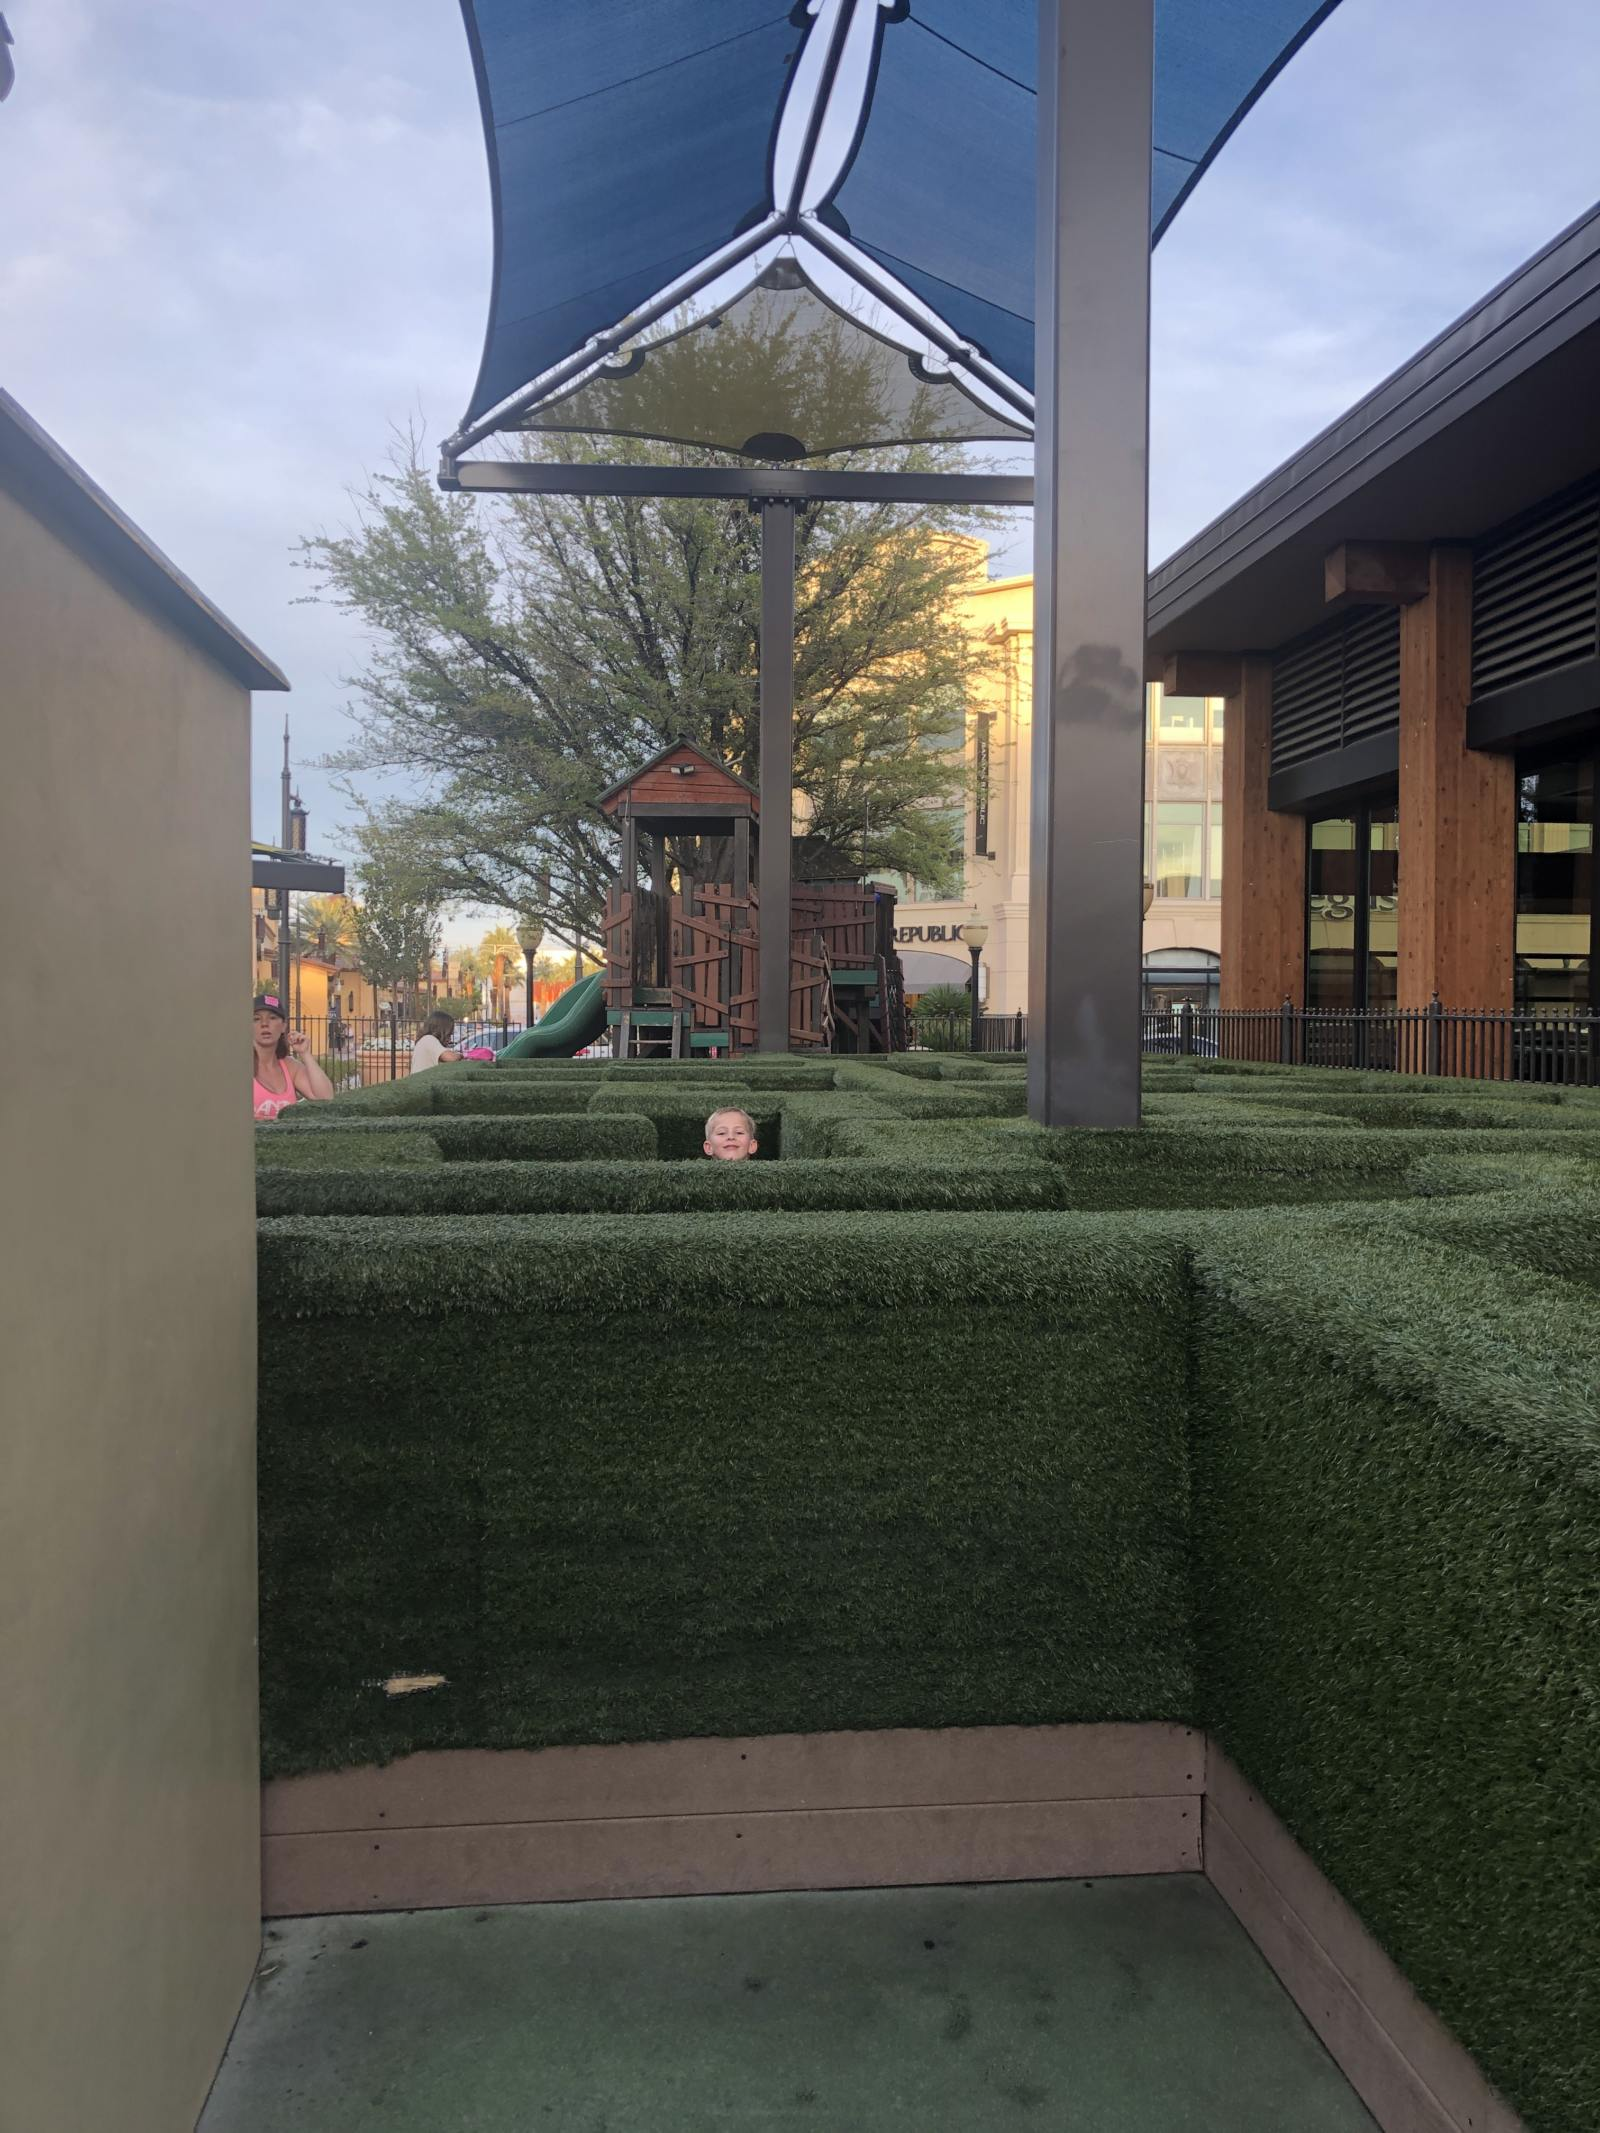 maze and climbing house structure at children's play area at town square las vegas